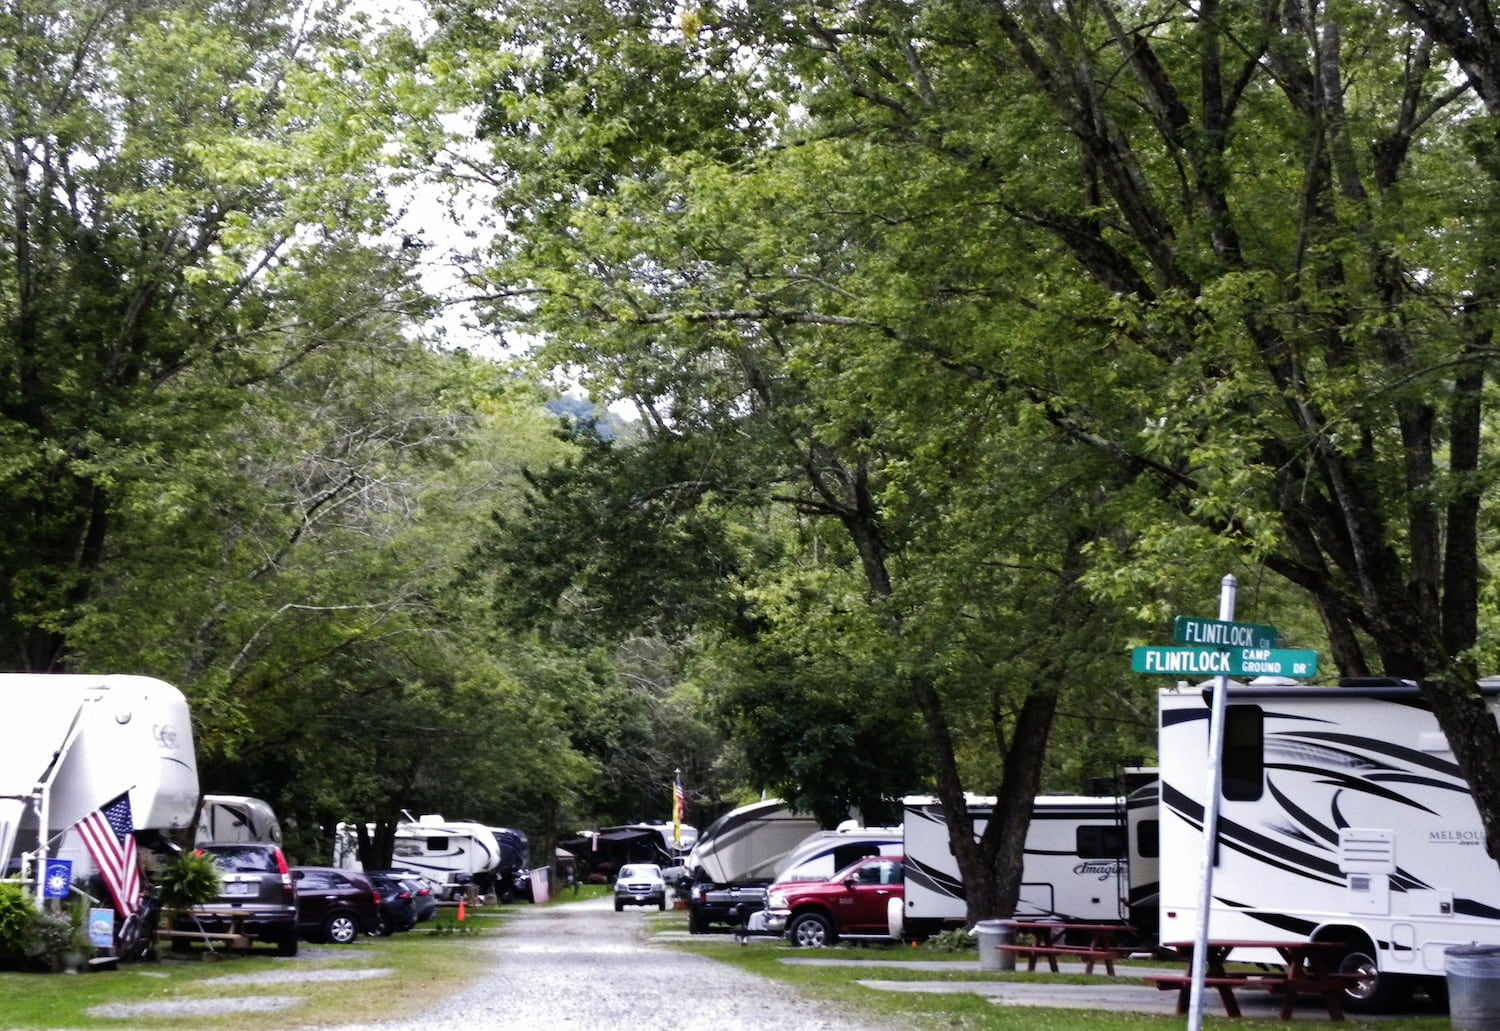 row of RVs parked at campsite